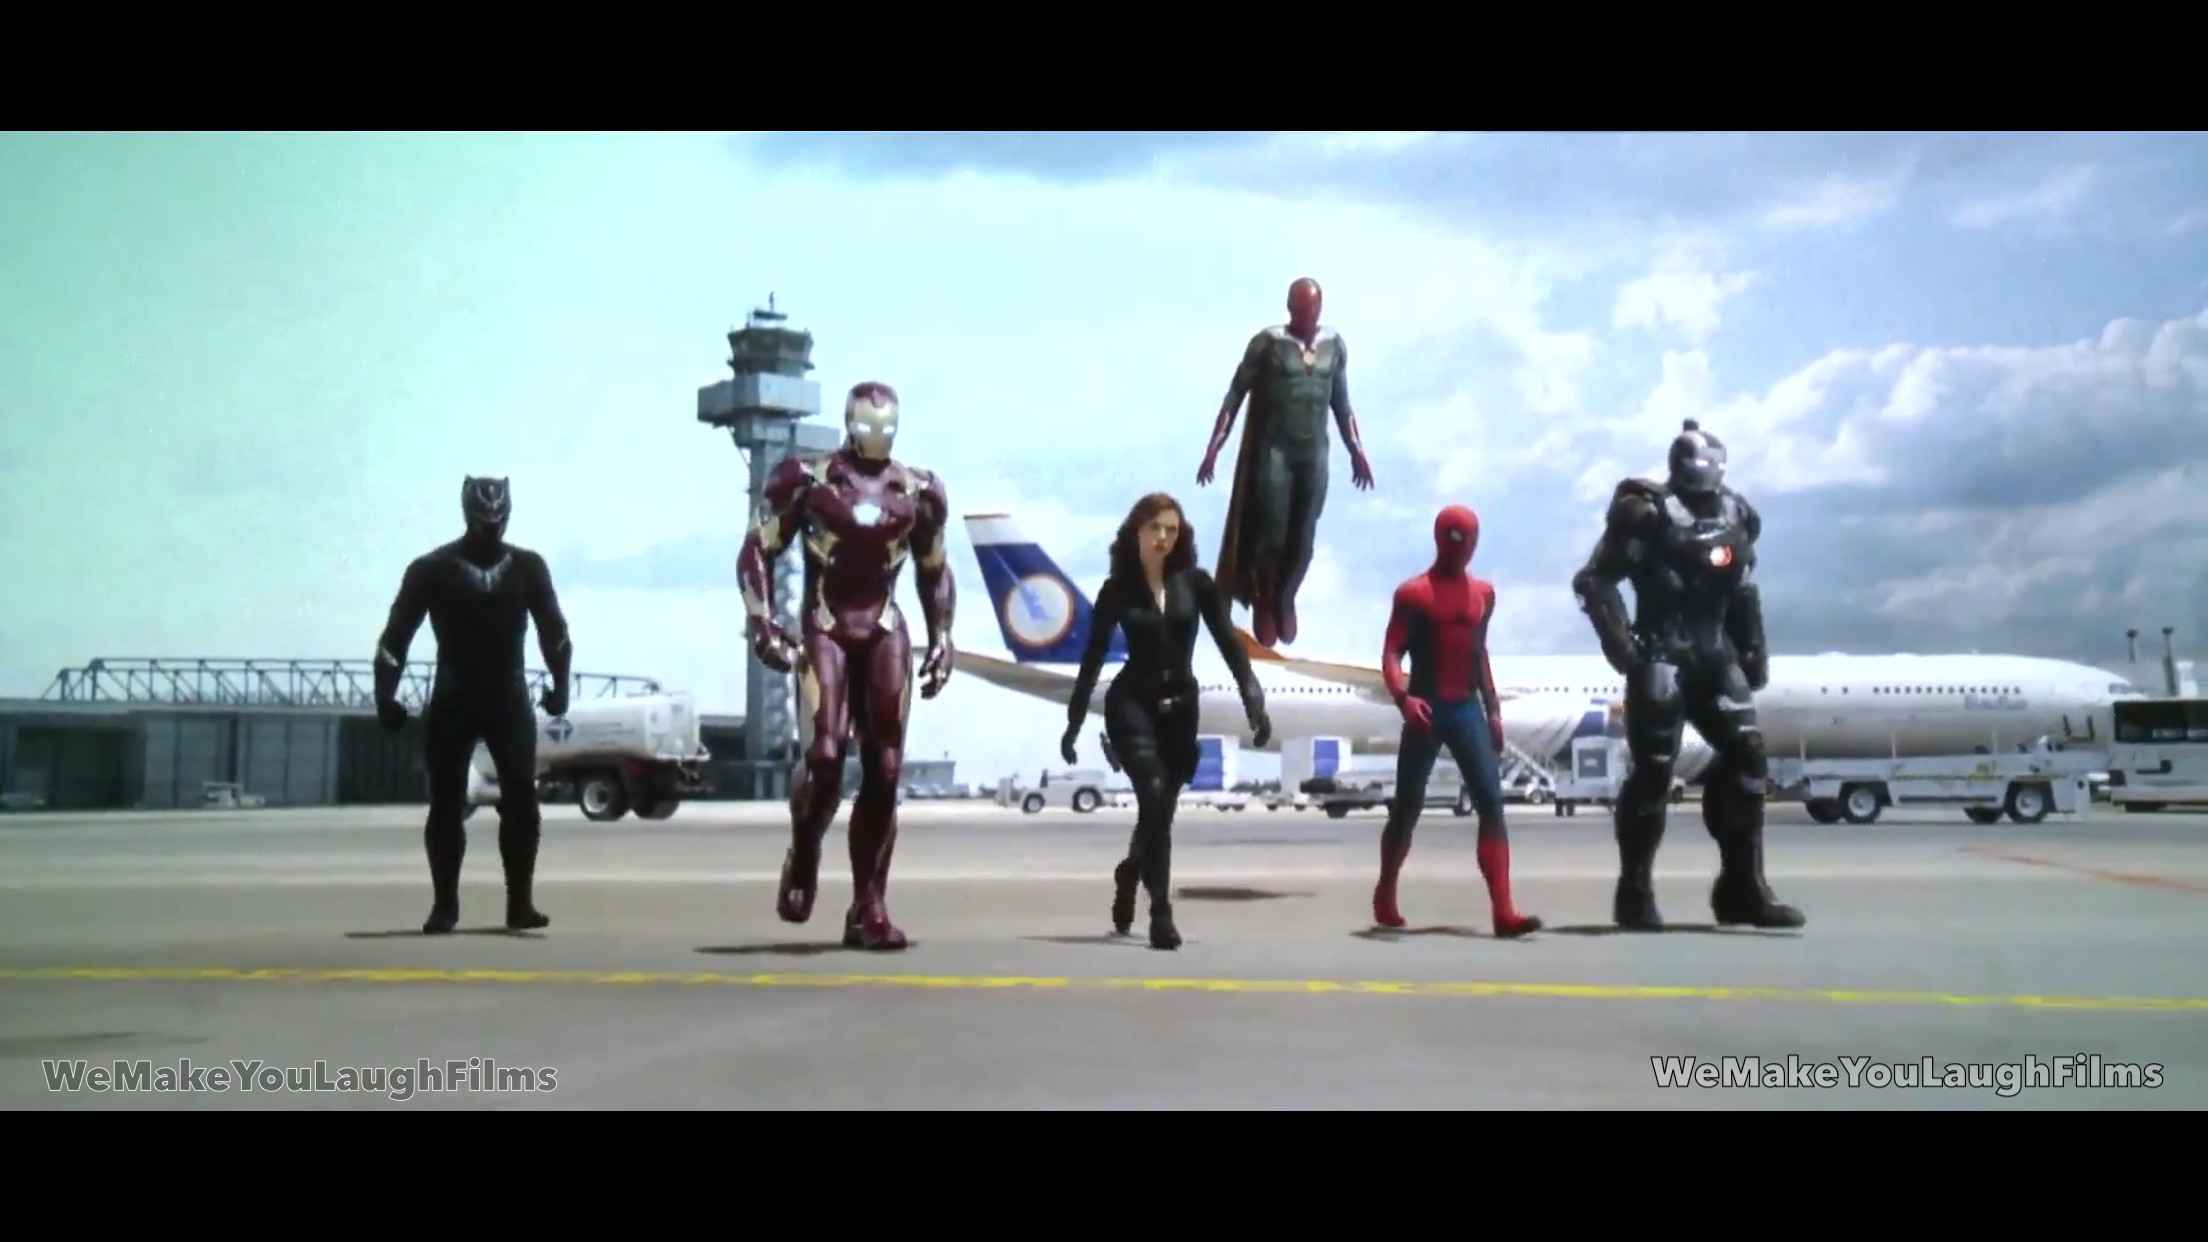 … wemakeyoulaughfilms Team Iron Man Walking – Captain America Civil War  by wemakeyoulaughfilms